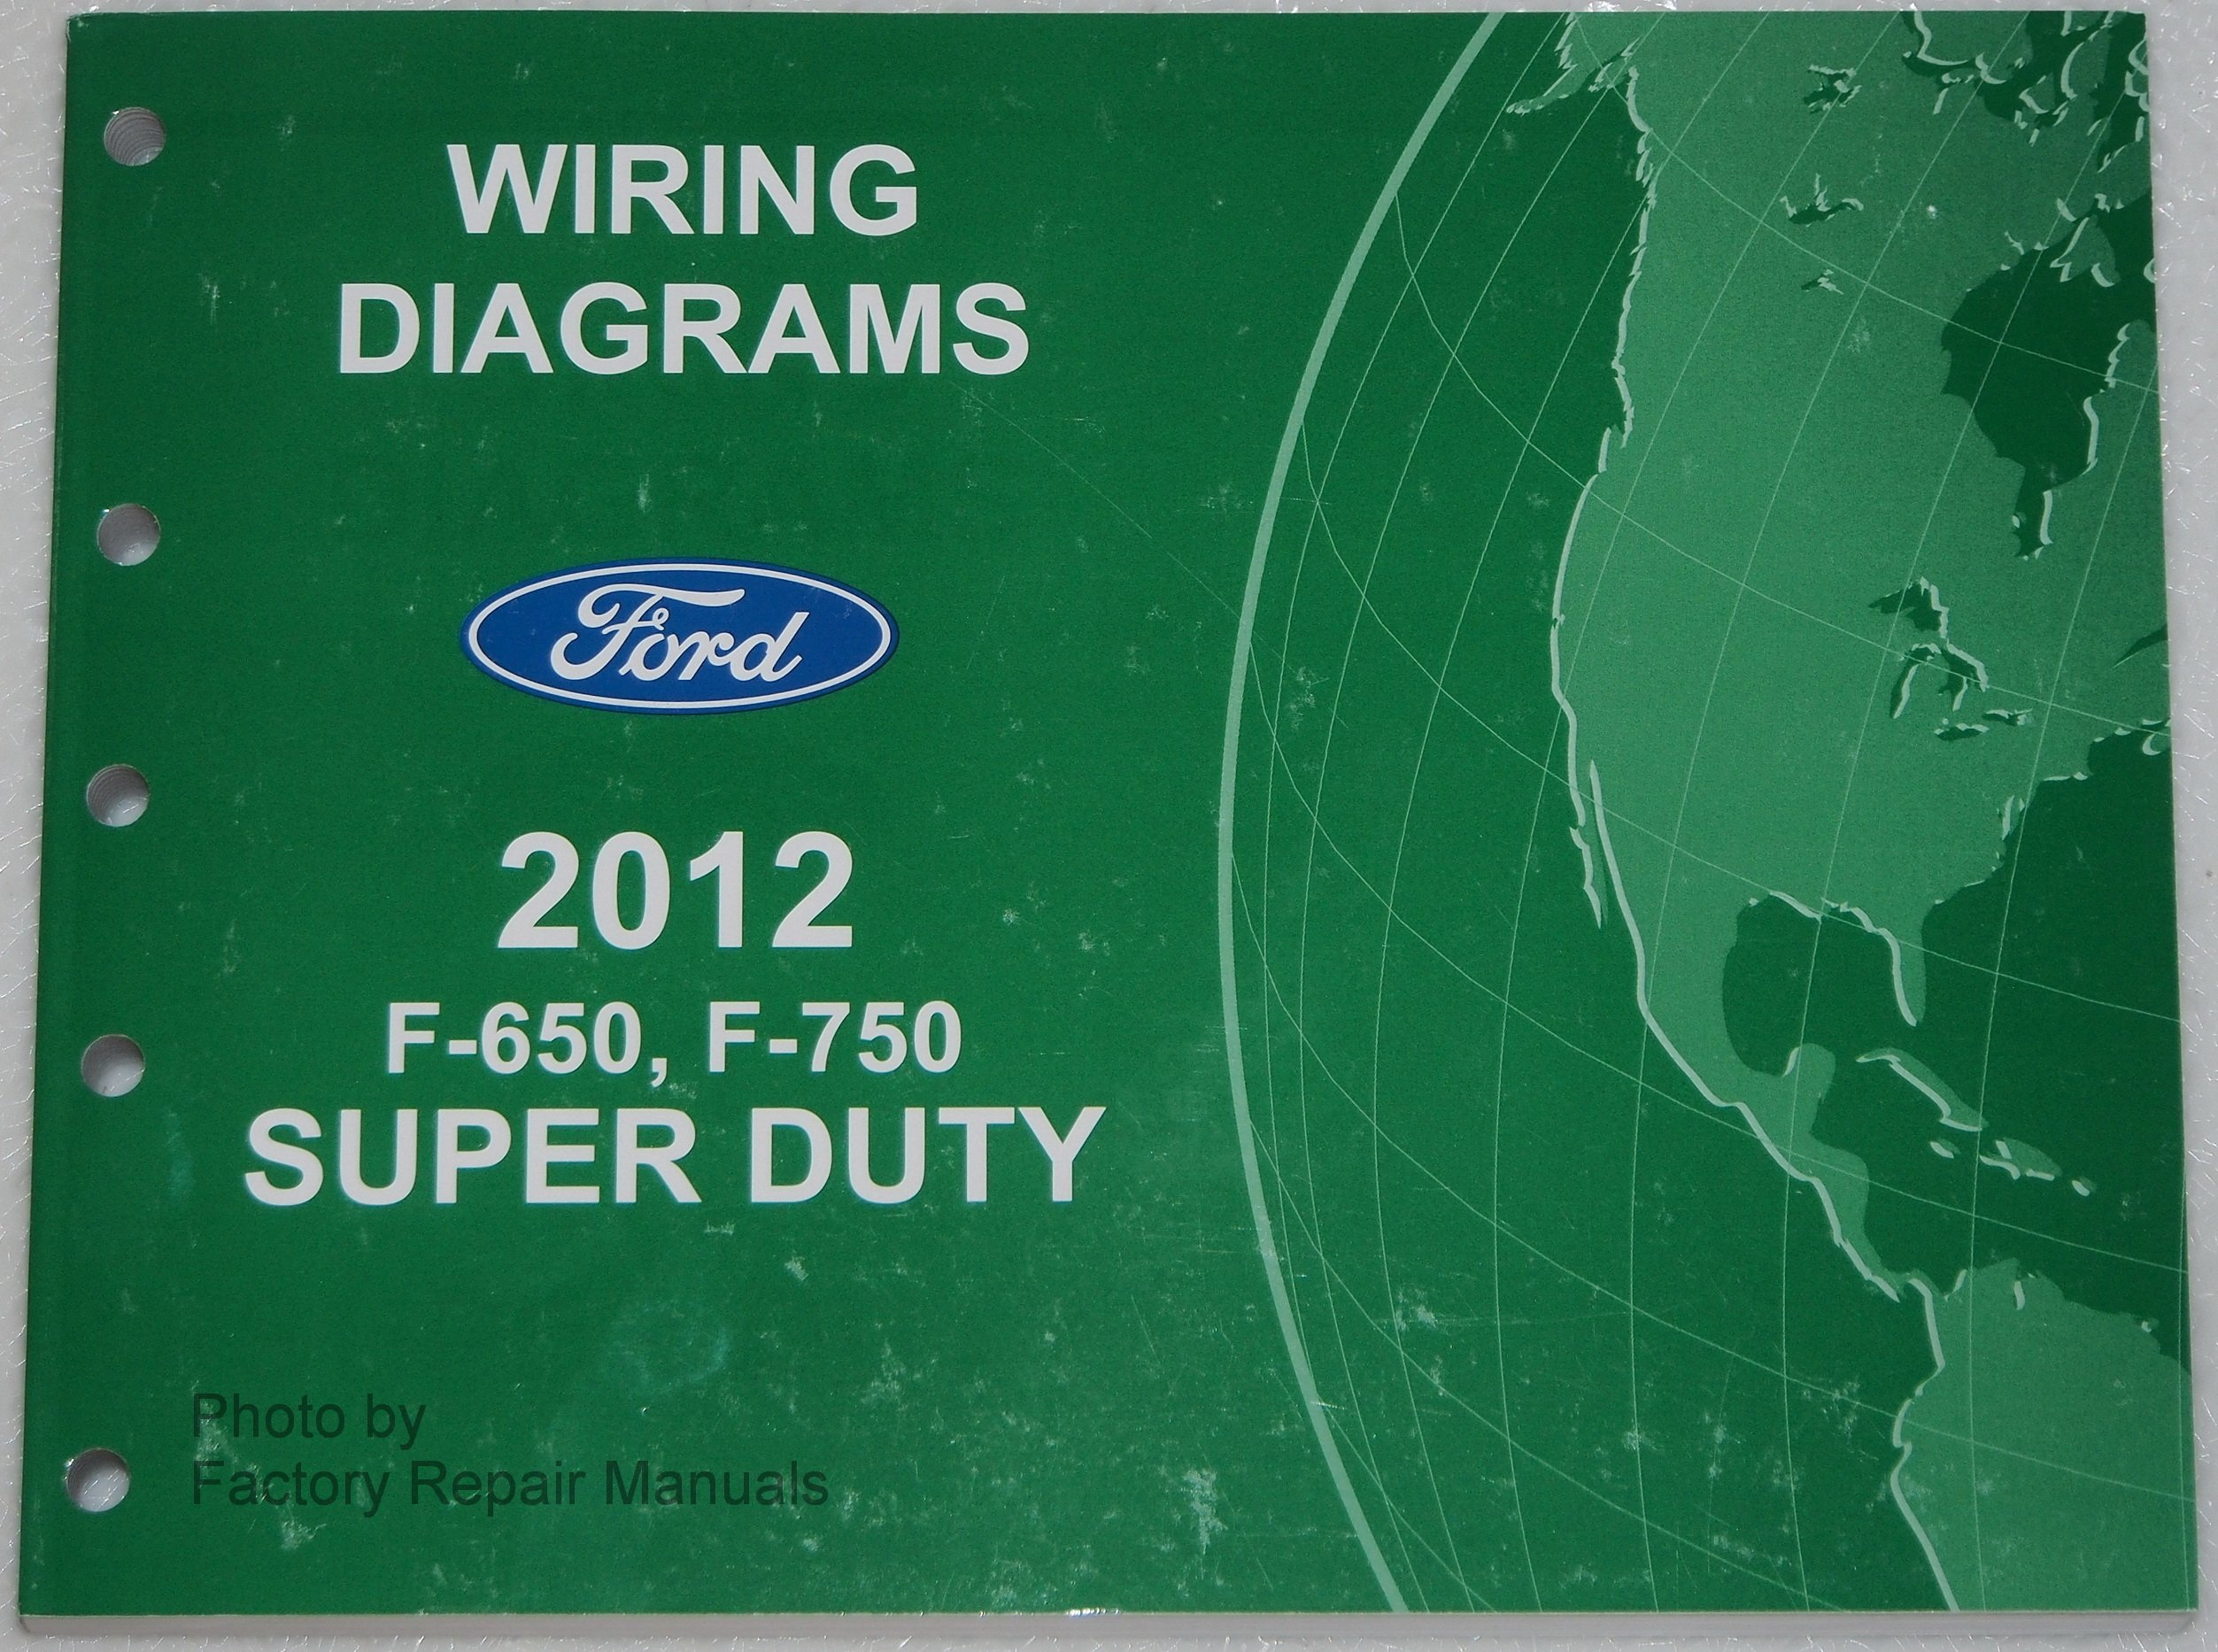 91KkFIScY%2BL 2012 f650 f750 wiring diagram ford motor company amazon com books ford f750 wiring diagram at mifinder.co